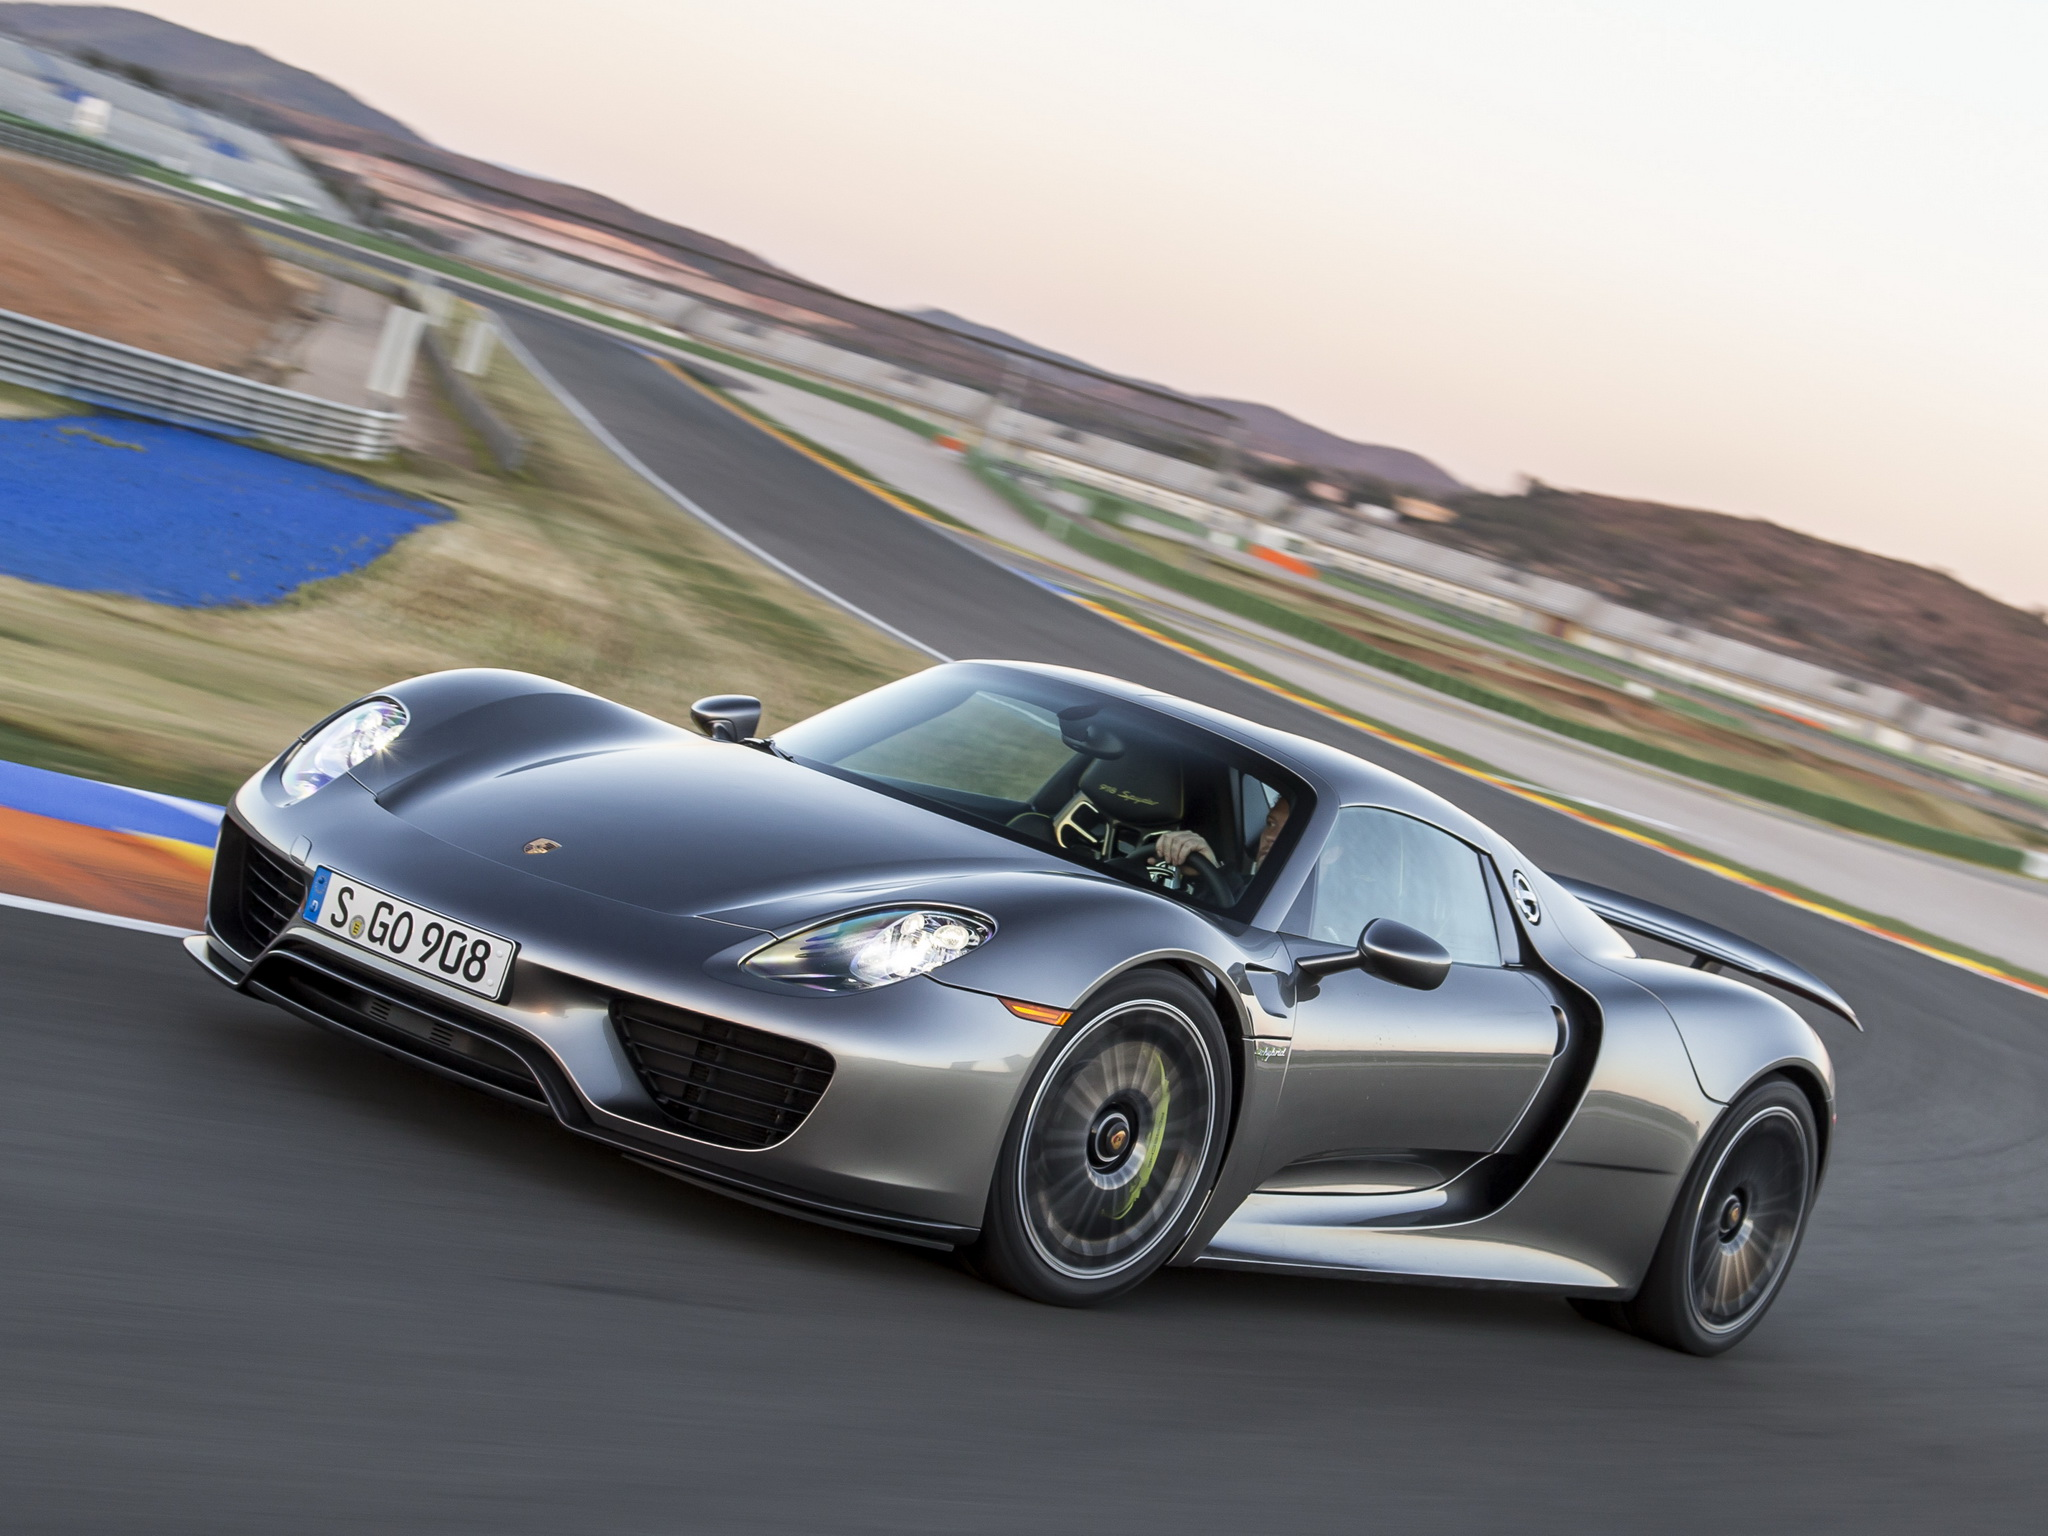 2014 Porsche 918 Spyder supercar r wallpaper background